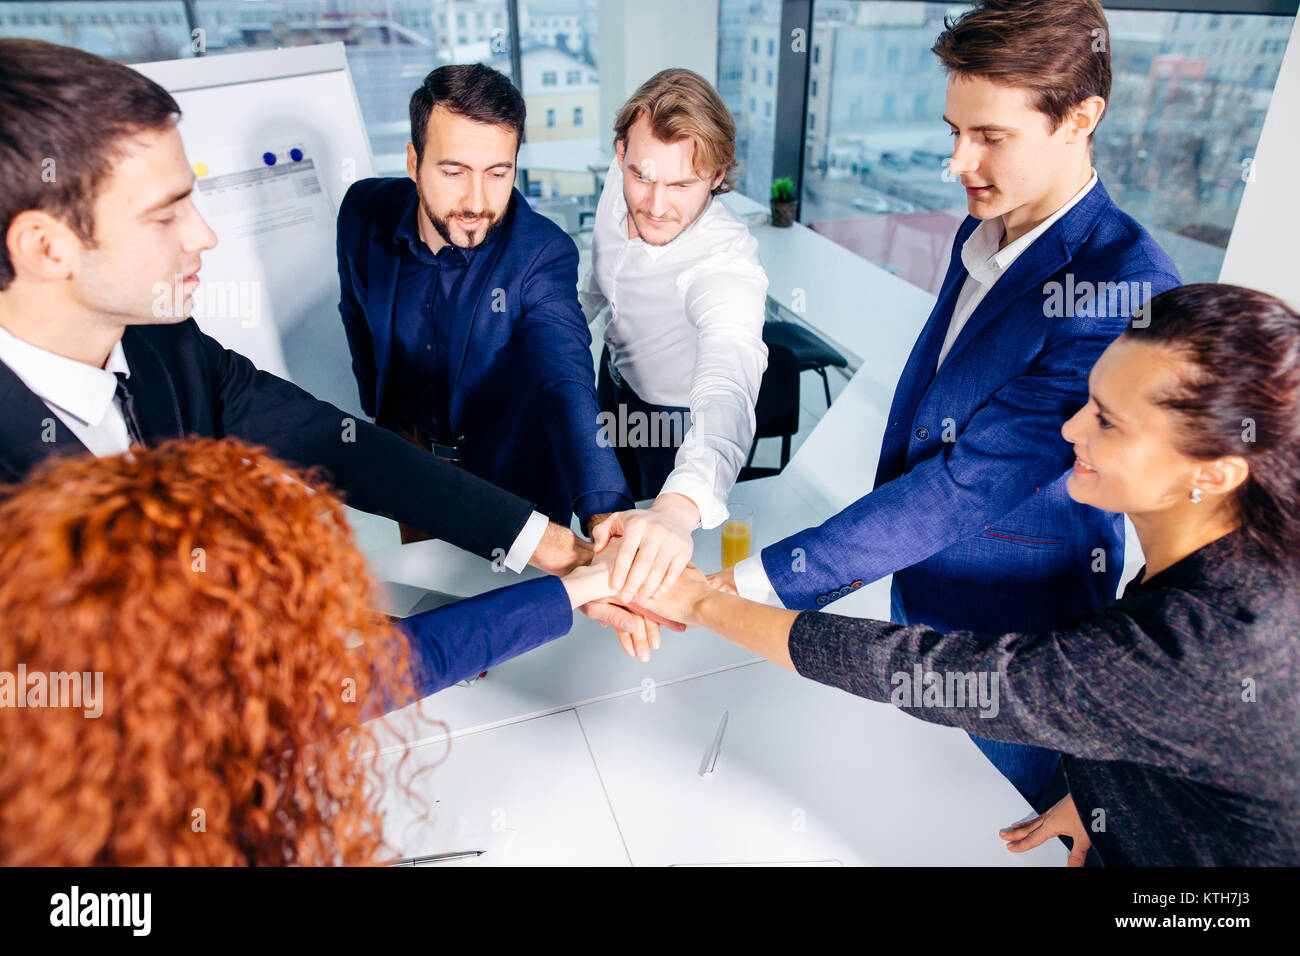 Business People Teamwork Collaboration Relation Concept - Stock Image